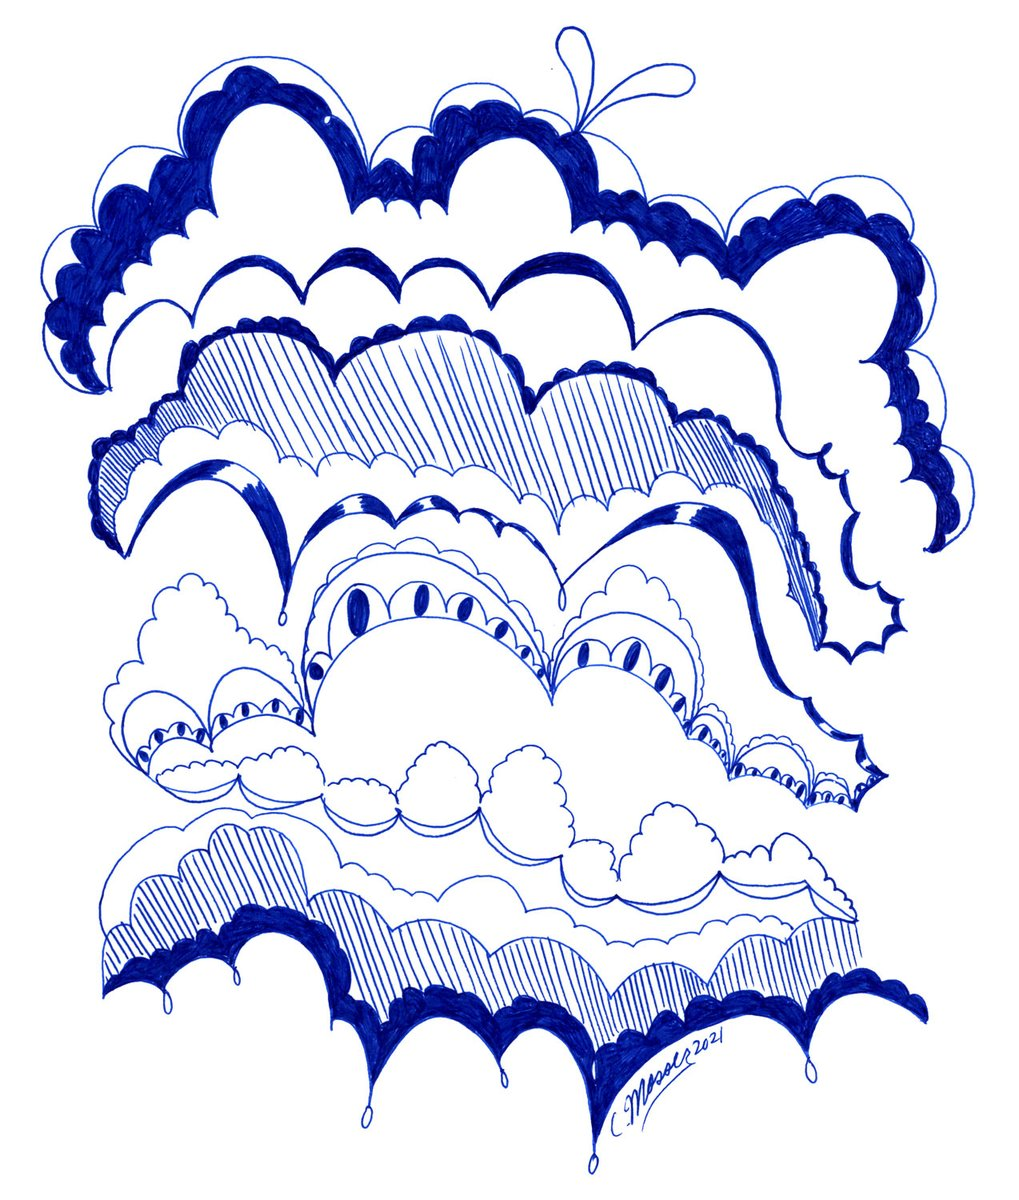 Creating this bubble shape comes very naturally to me. So why not make endless fun? Love, Cynthia ❤️  See more illustrations at   #cynthiamosser #illustration #fun #bubbleshape #clouds #pen